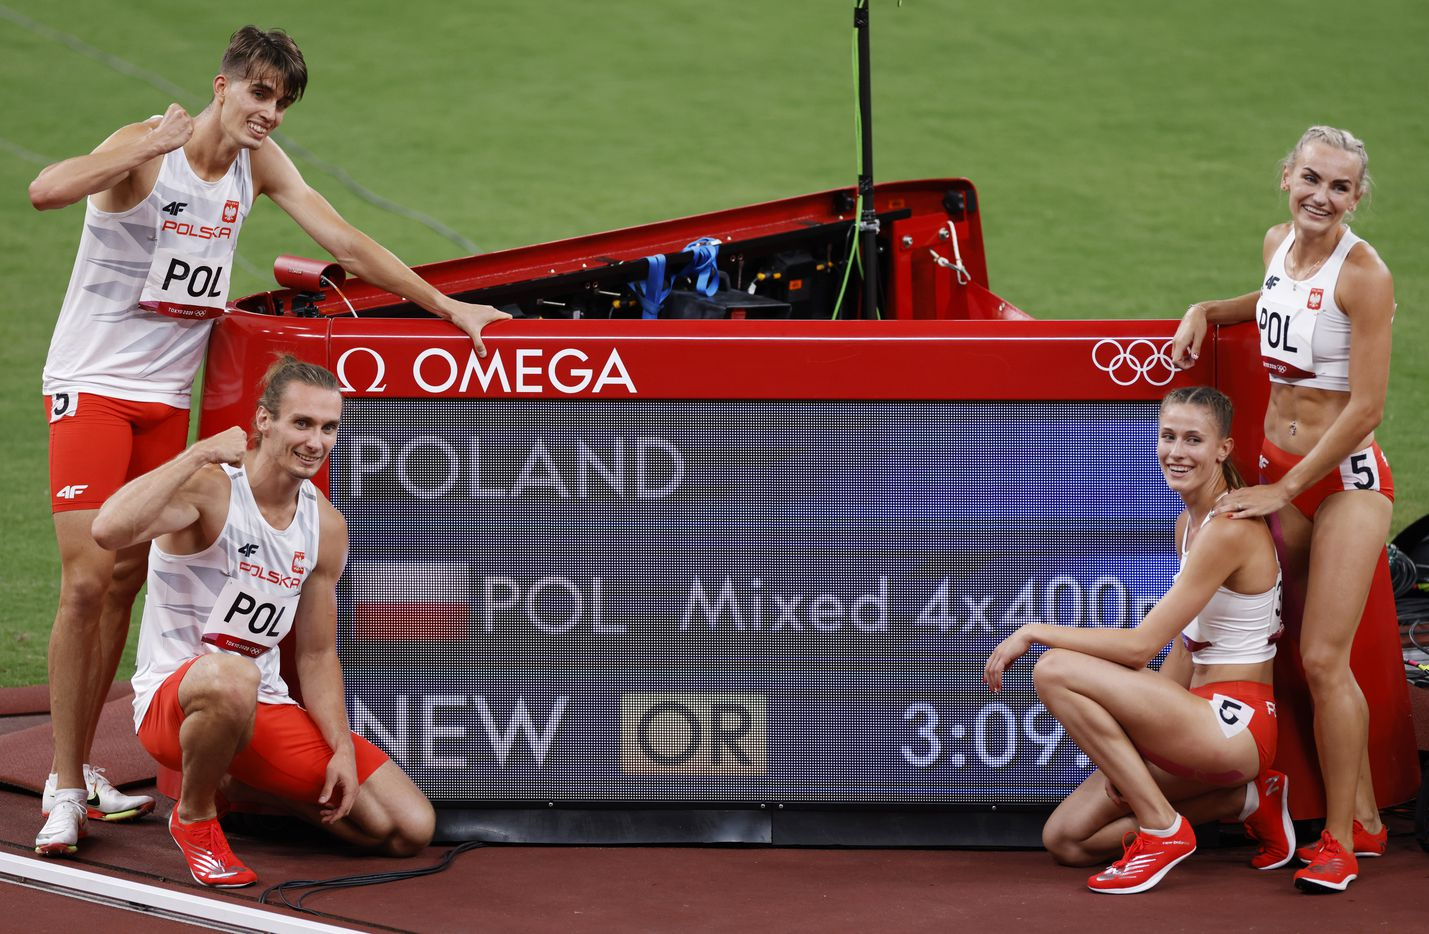 (From l to r) Poland's Kajetan Duszynski, Karol Zalewski, Natalia Kacmarek and Justyna Swiety-Ersetic pose with the scoreboard displaying their new Olympic record after winning the mixed 4x400m relay final during the postponed 2020 Tokyo Olympics at Olympic Stadium, on Saturday, July 31, 2021, in Tokyo, Japan. (Vernon Bryant/The Dallas Morning News)